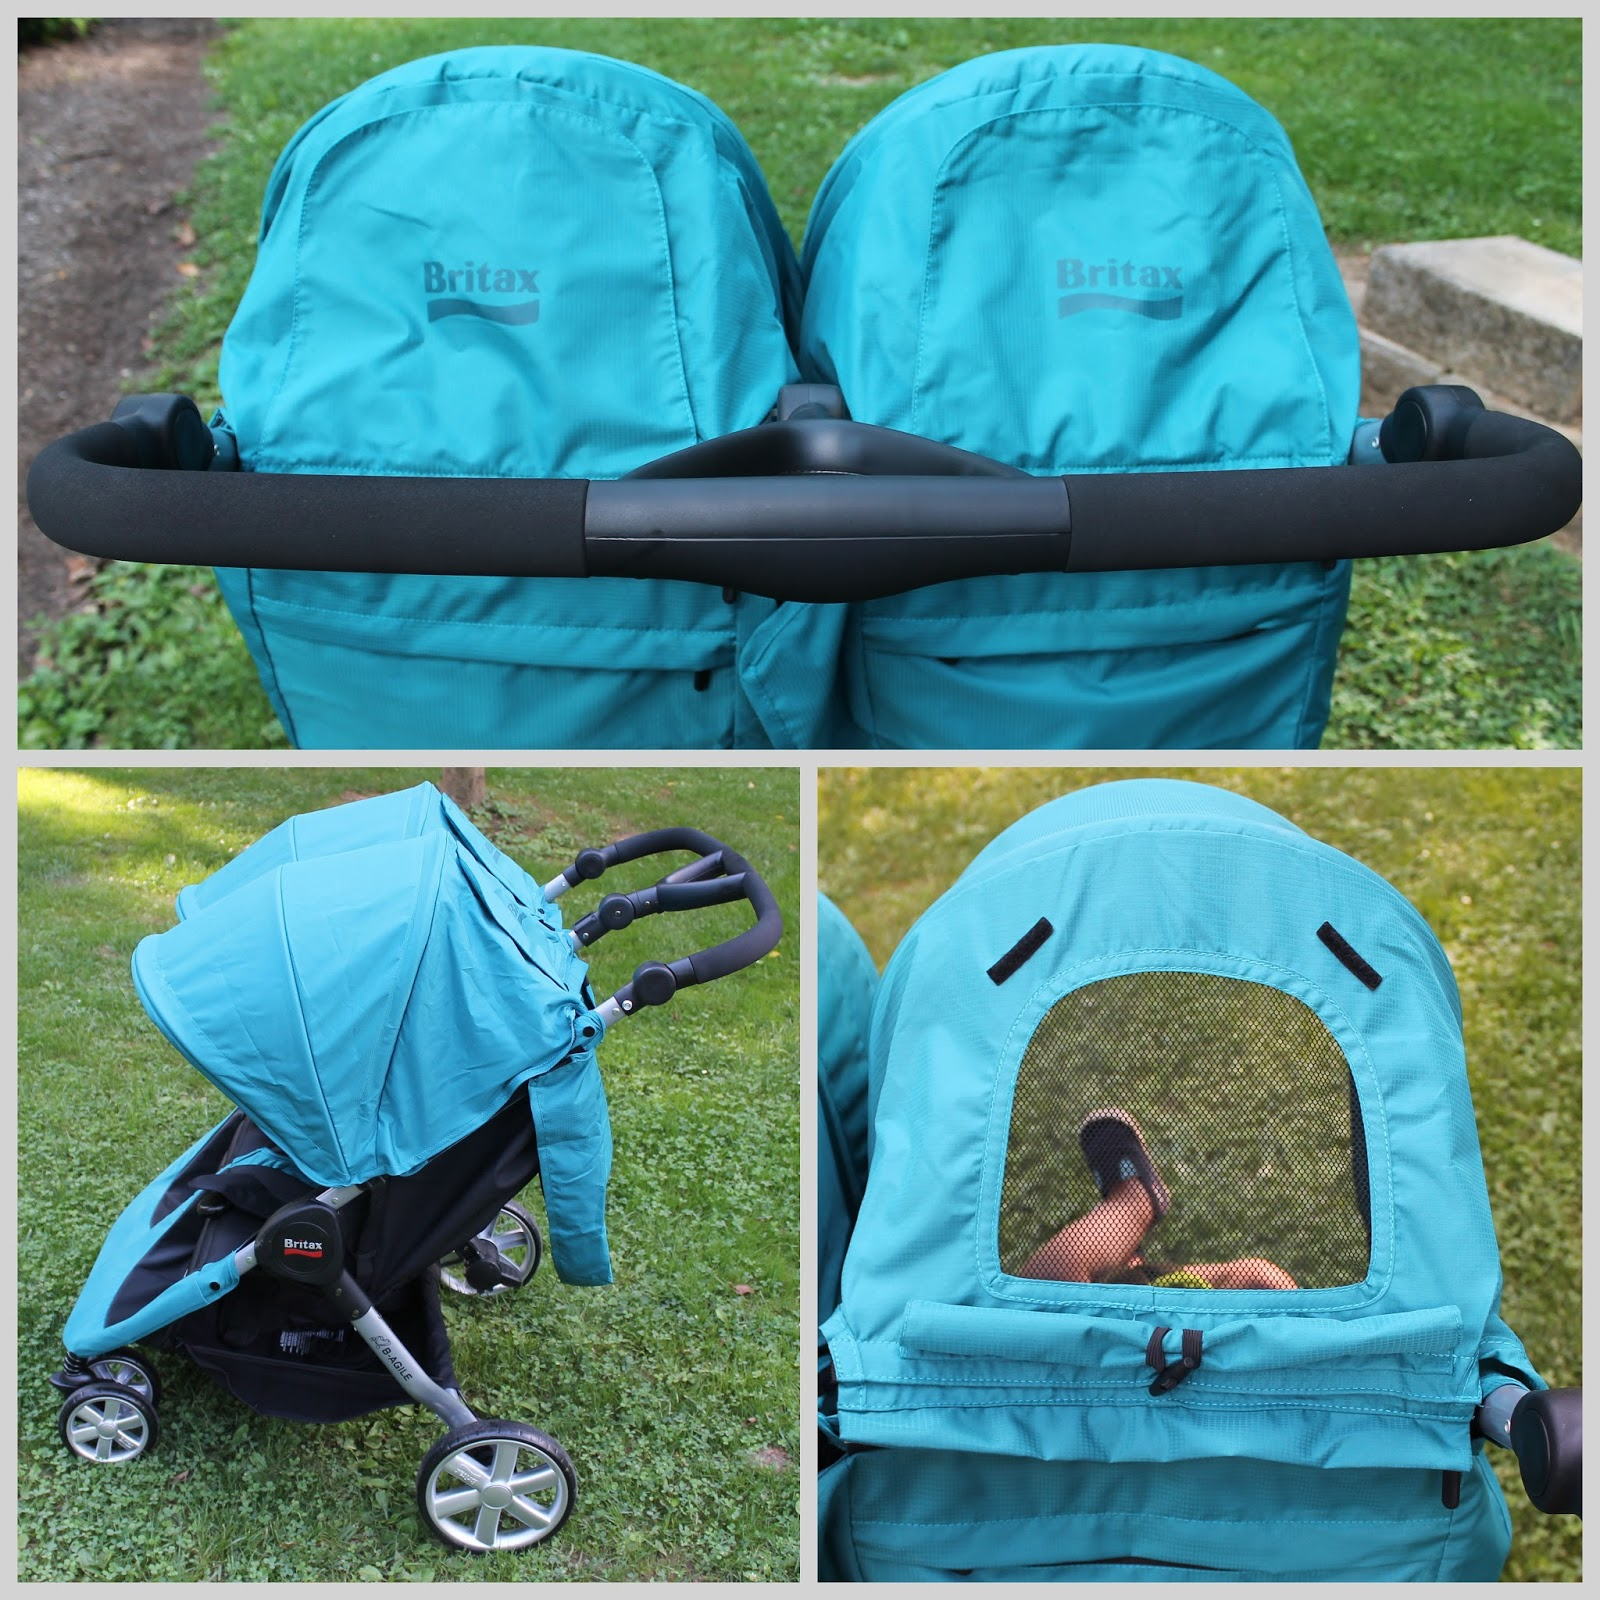 sc 1 st  Thrifty Nifty Mommy & Britax B-Agile Double Stroller Review - Thrifty Nifty Mommy